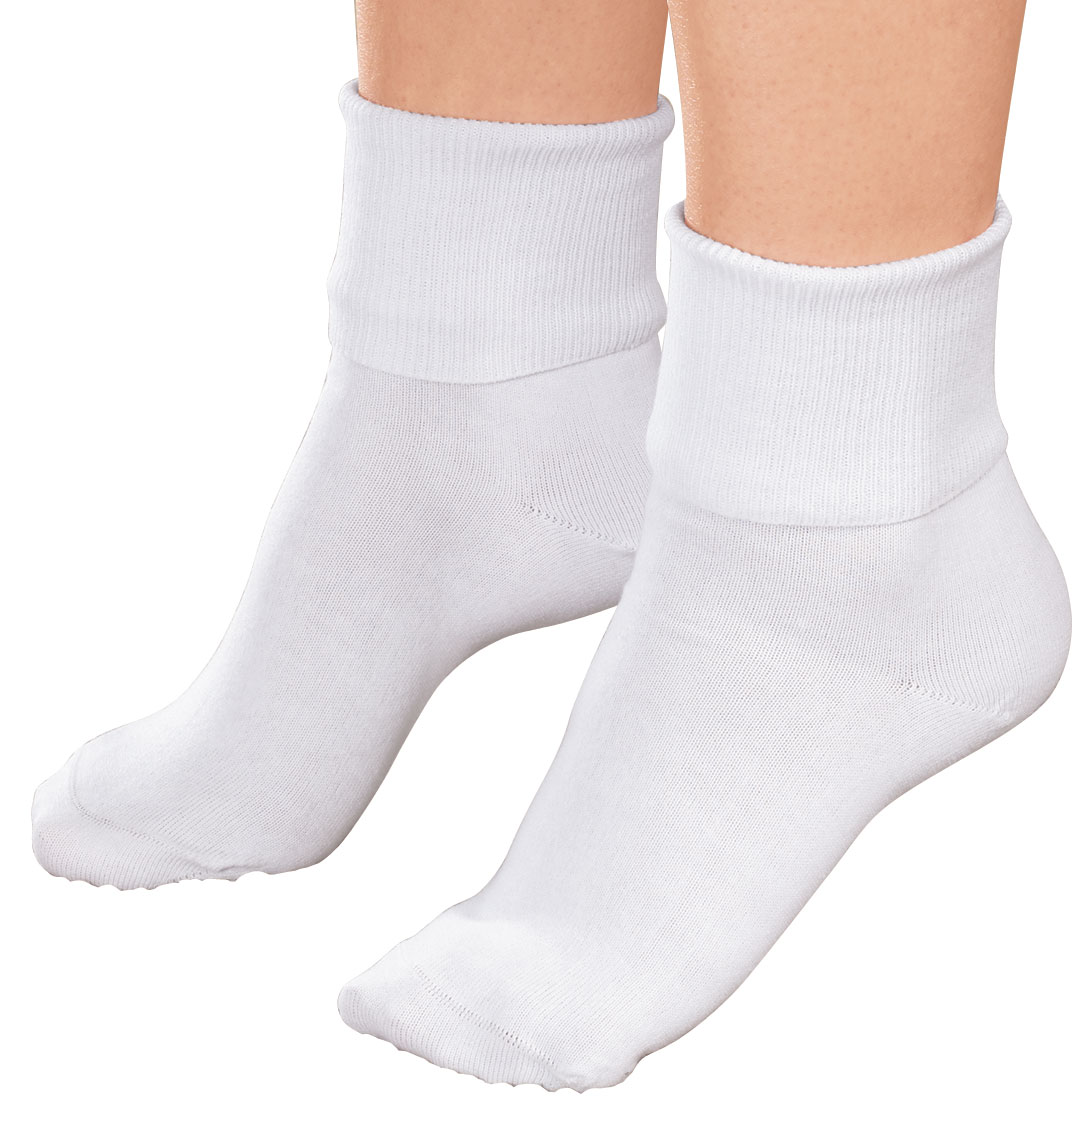 Prime Life Fibers - Buster Brown Women's 100% Cotton Socks - 3 Pair